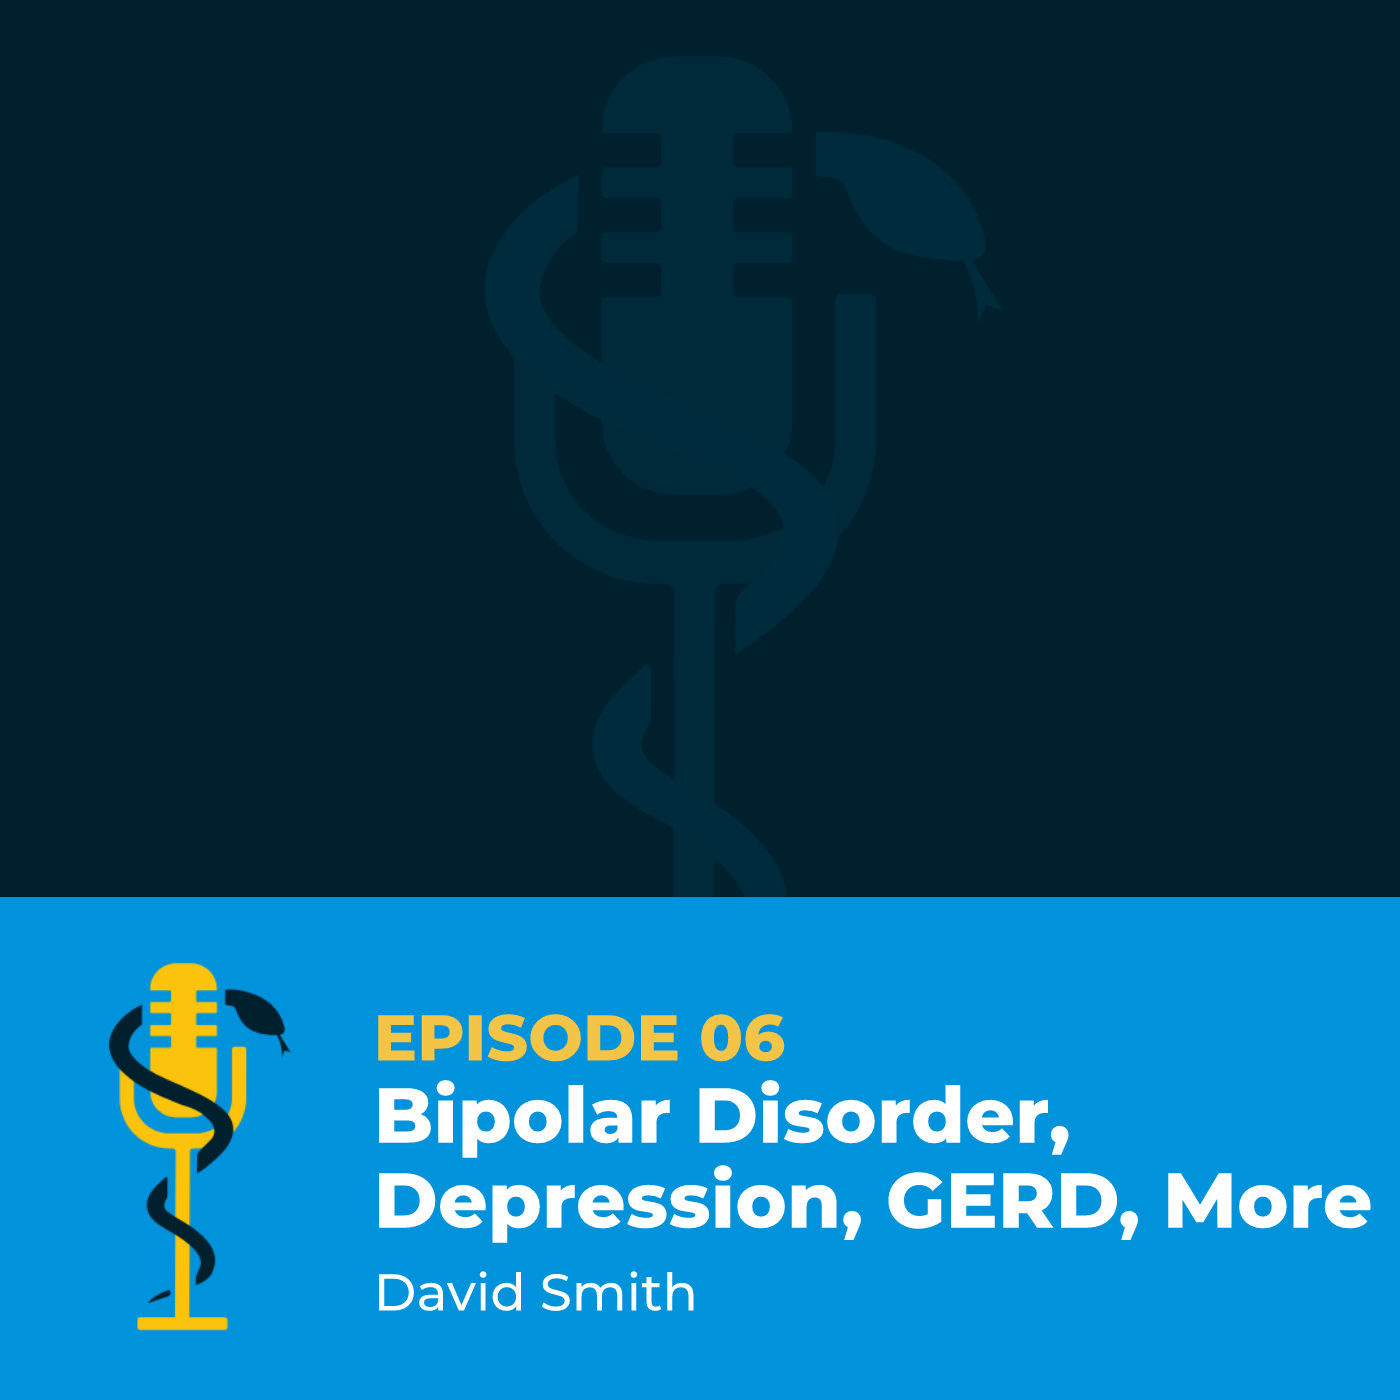 Ep.06: Bipolar Disorder, Depression, GERD, and More with David Smith